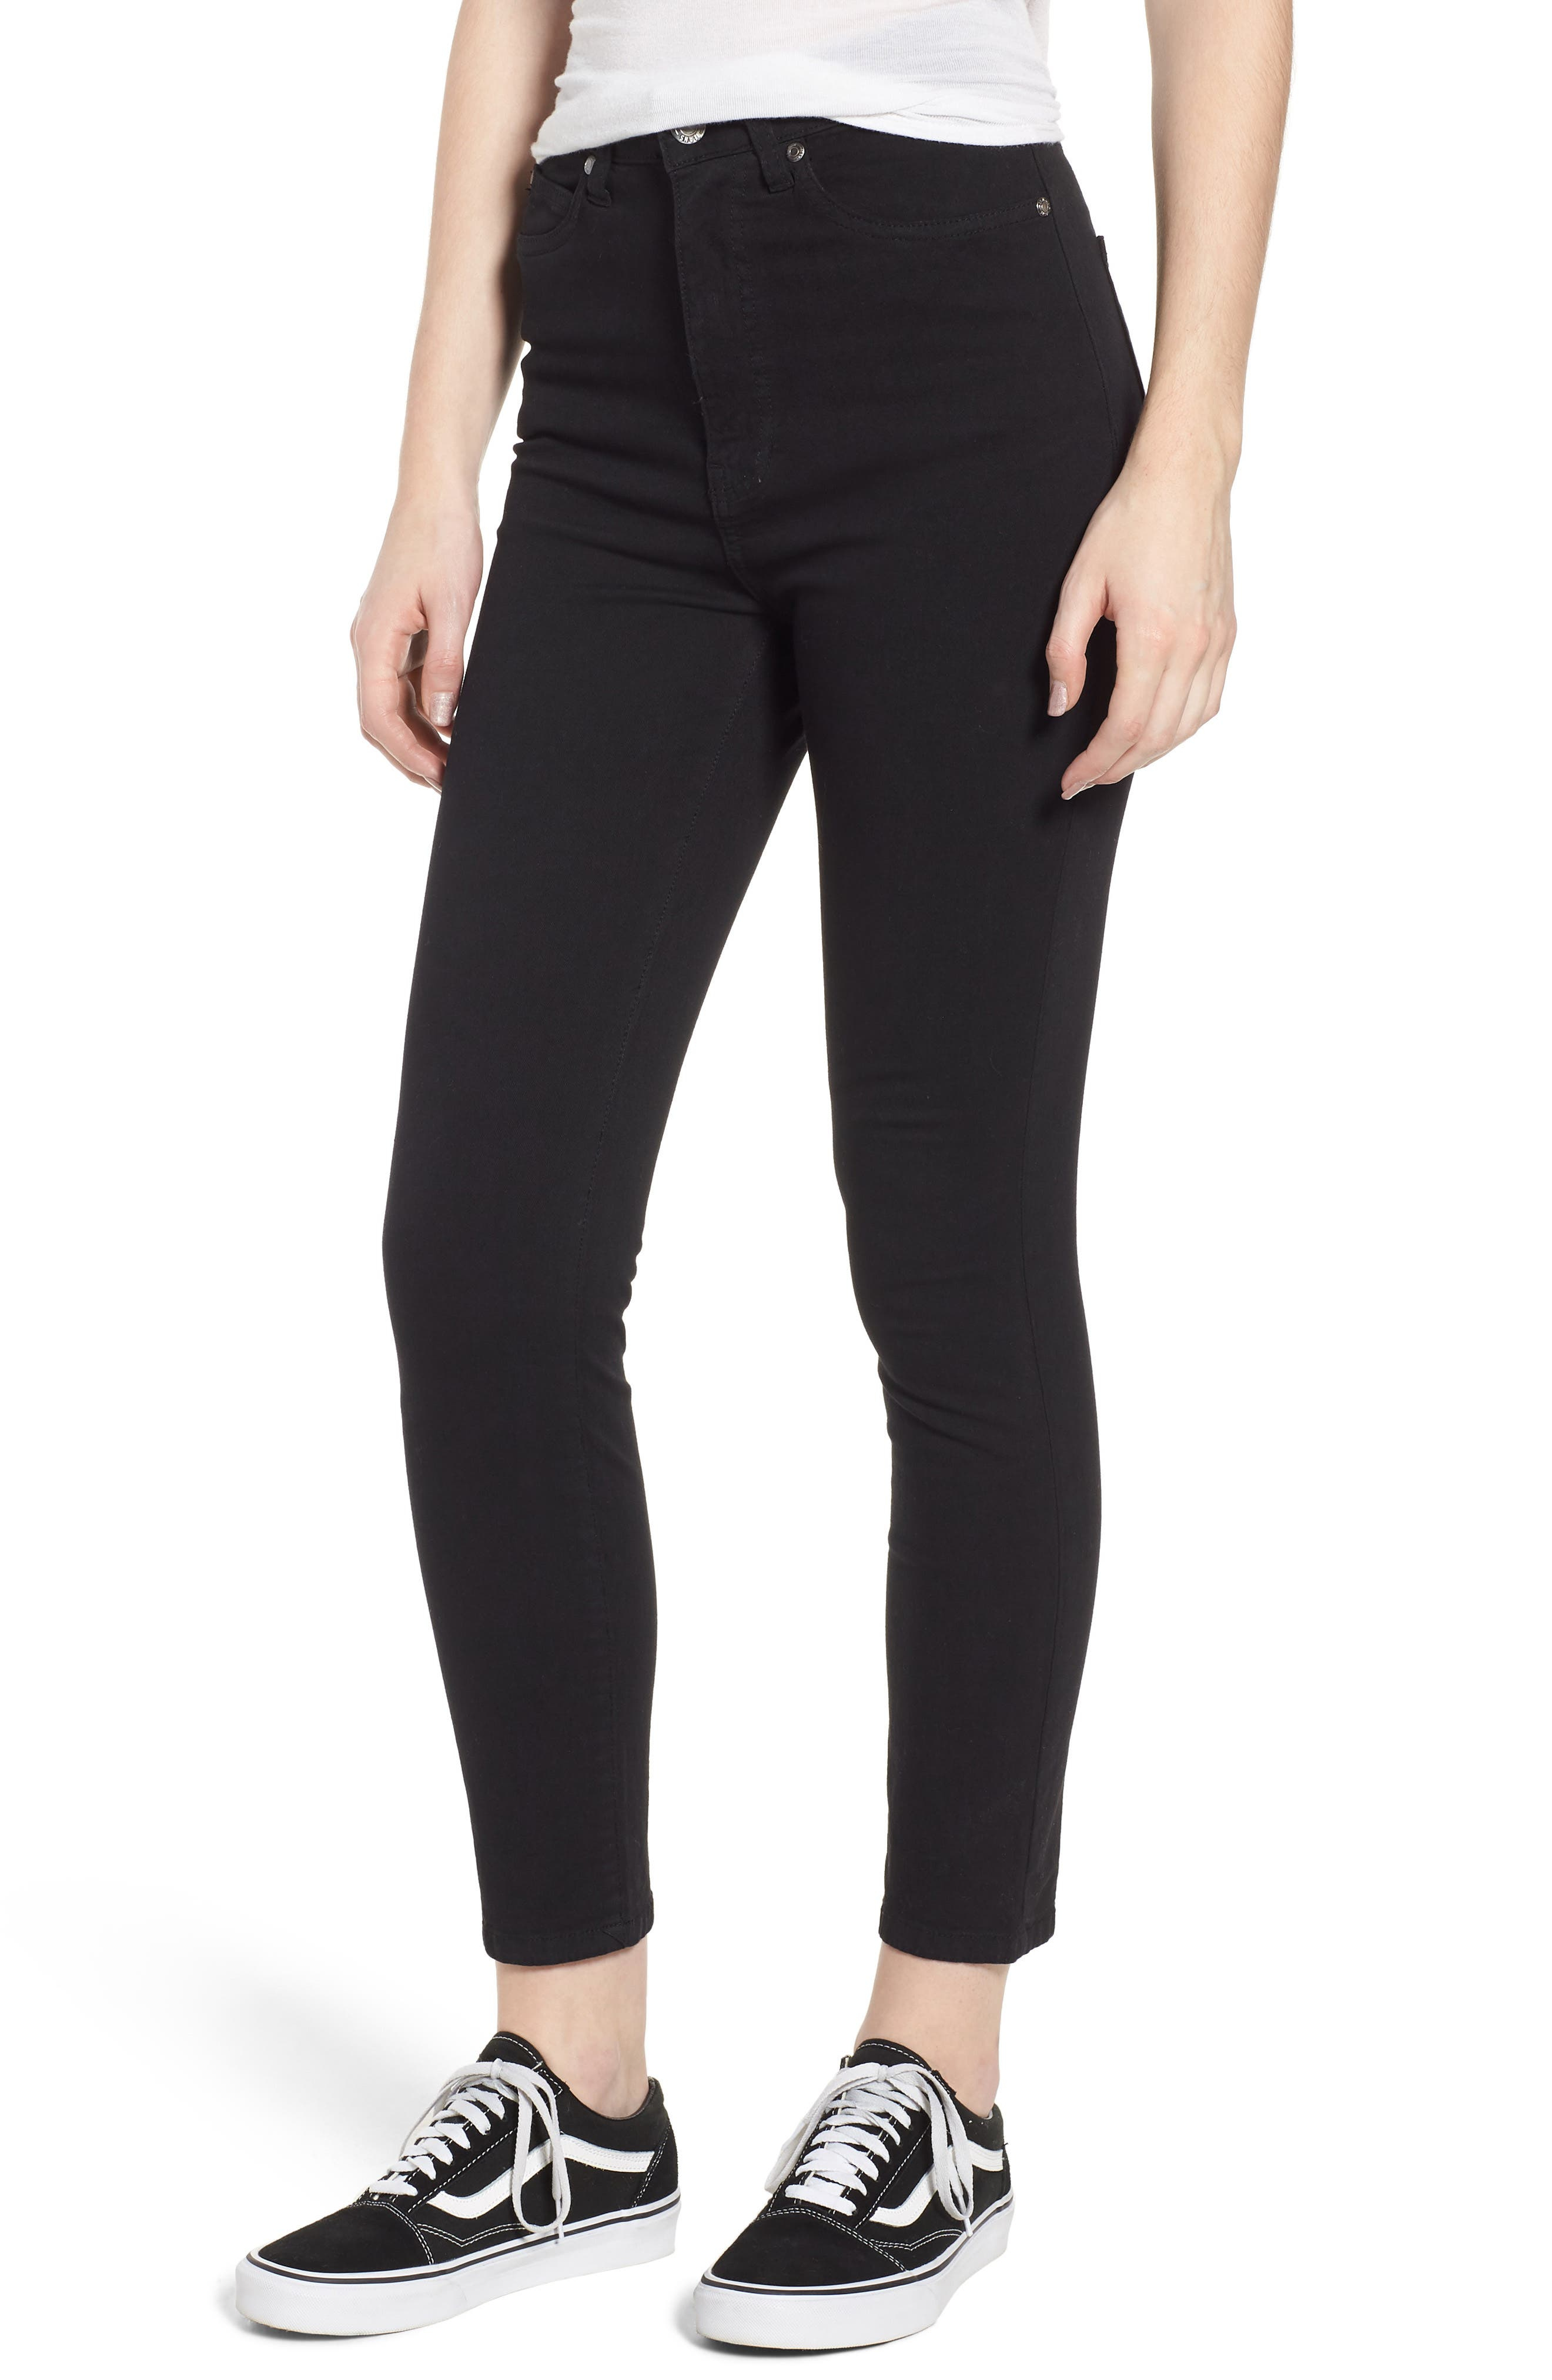 Cropa Cabana Skyhigh Crop Skinny Jeans,                         Main,                         color, Black